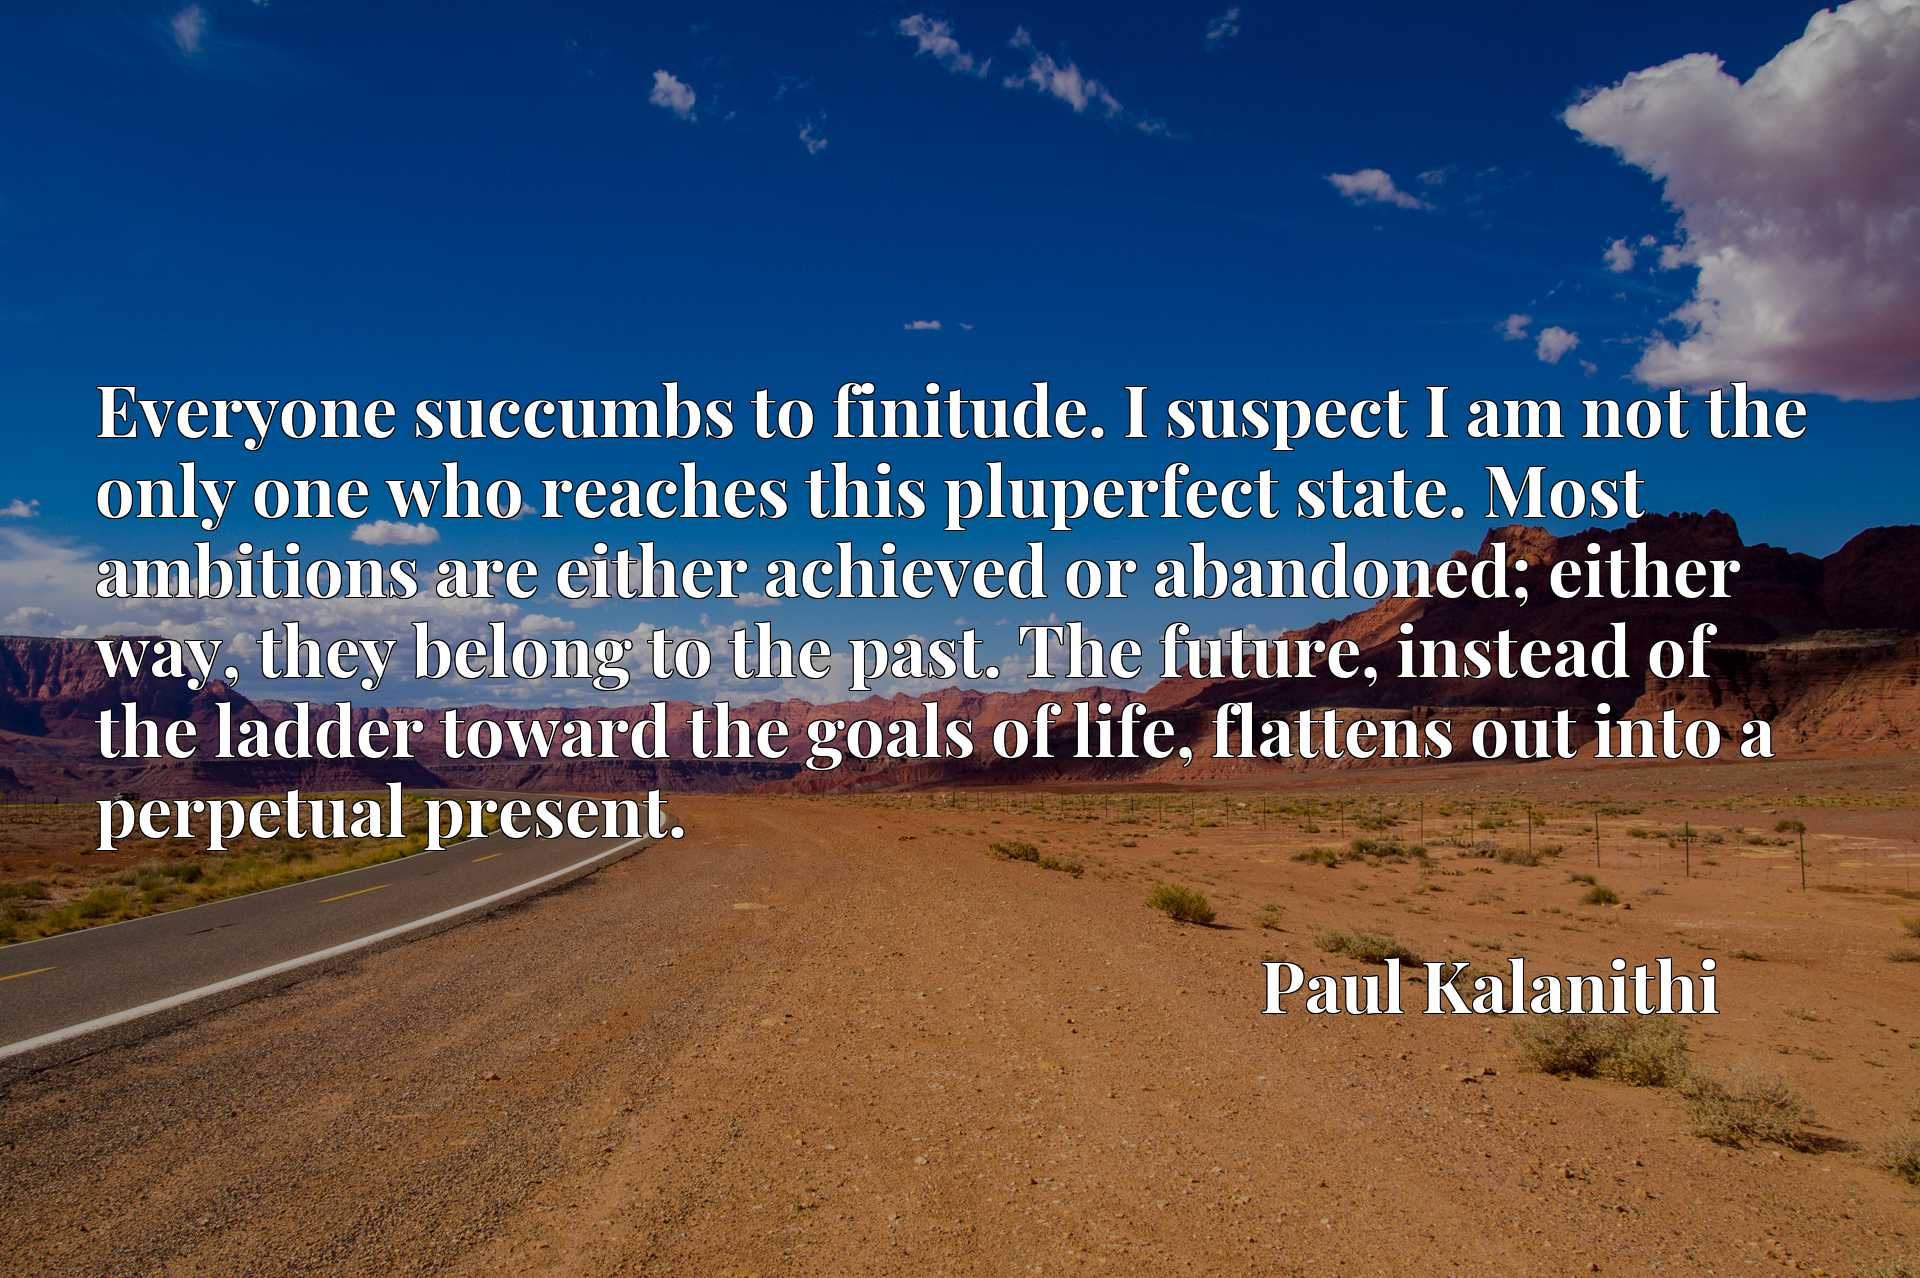 Everyone succumbs to finitude. I suspect I am not the only one who reaches this pluperfect state. Most ambitions are either achieved or abandoned; either way, they belong to the past. The future, instead of the ladder toward the goals of life, flattens out into a perpetual present.